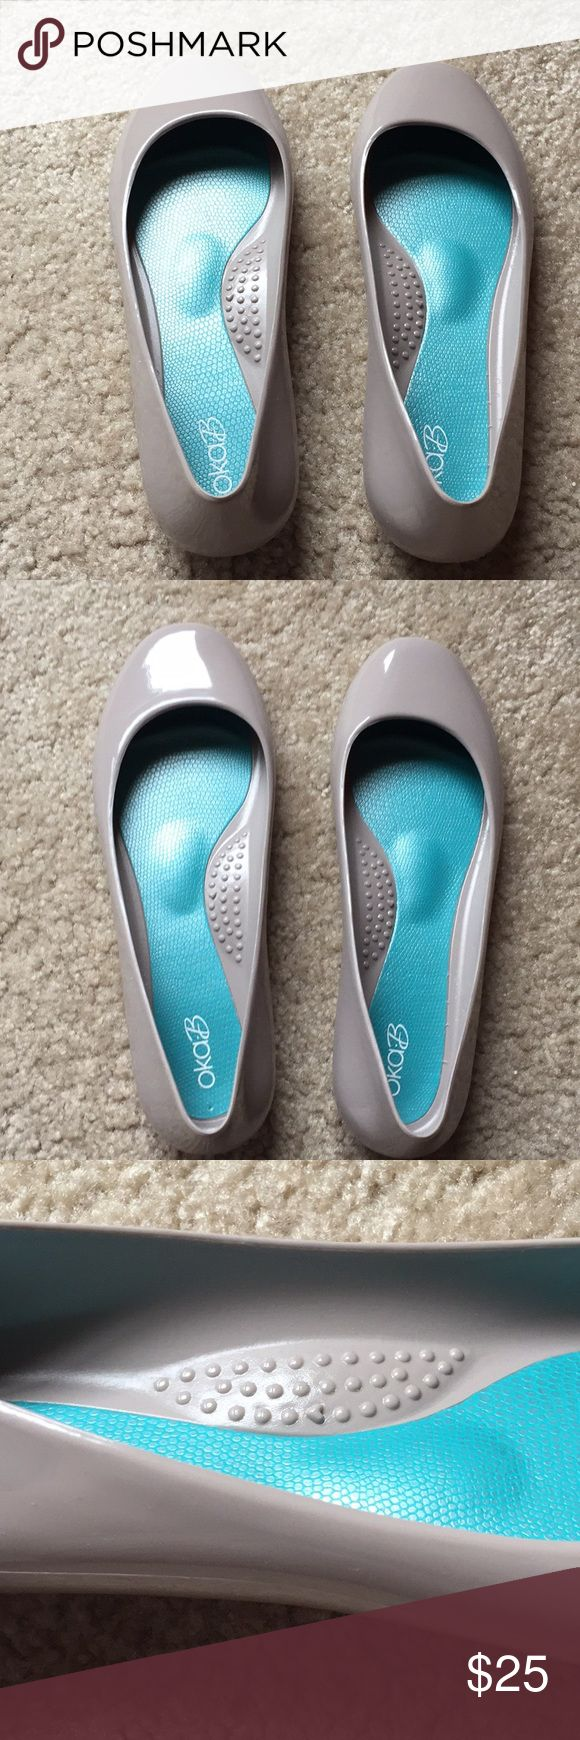 Oka b. Taylor Ballet Flats Size 7 Taupe Grey Light colored ballet flats. Recycle…